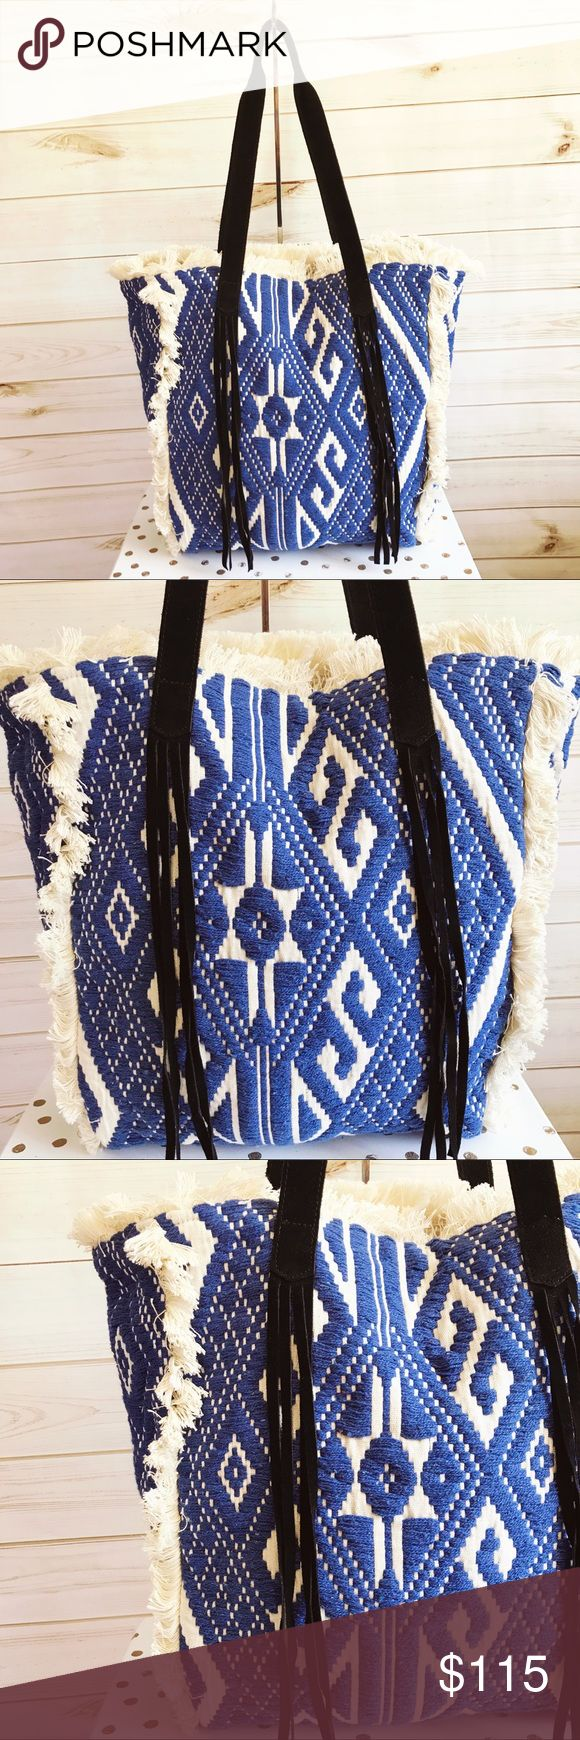 """Raj Blue Isabella Frayed Tote Stunning, large cream tote bag w/gorgeous bright blue embroidery. Features frayed details along sides/top of bag; black suede straps & long, suede, fringed details on front of bag at bottom of straps; interior zip pocket; two small interior pocket. BRAND NEW item w/tags & is SOLD OUT in this color combo! 14""""L x 17.5""""H x 5""""W. Made in India. Pricing on Boutique items is FIRM. Many vendors do not provide tags. This item is a brand new item from a vendor & is tagged…"""